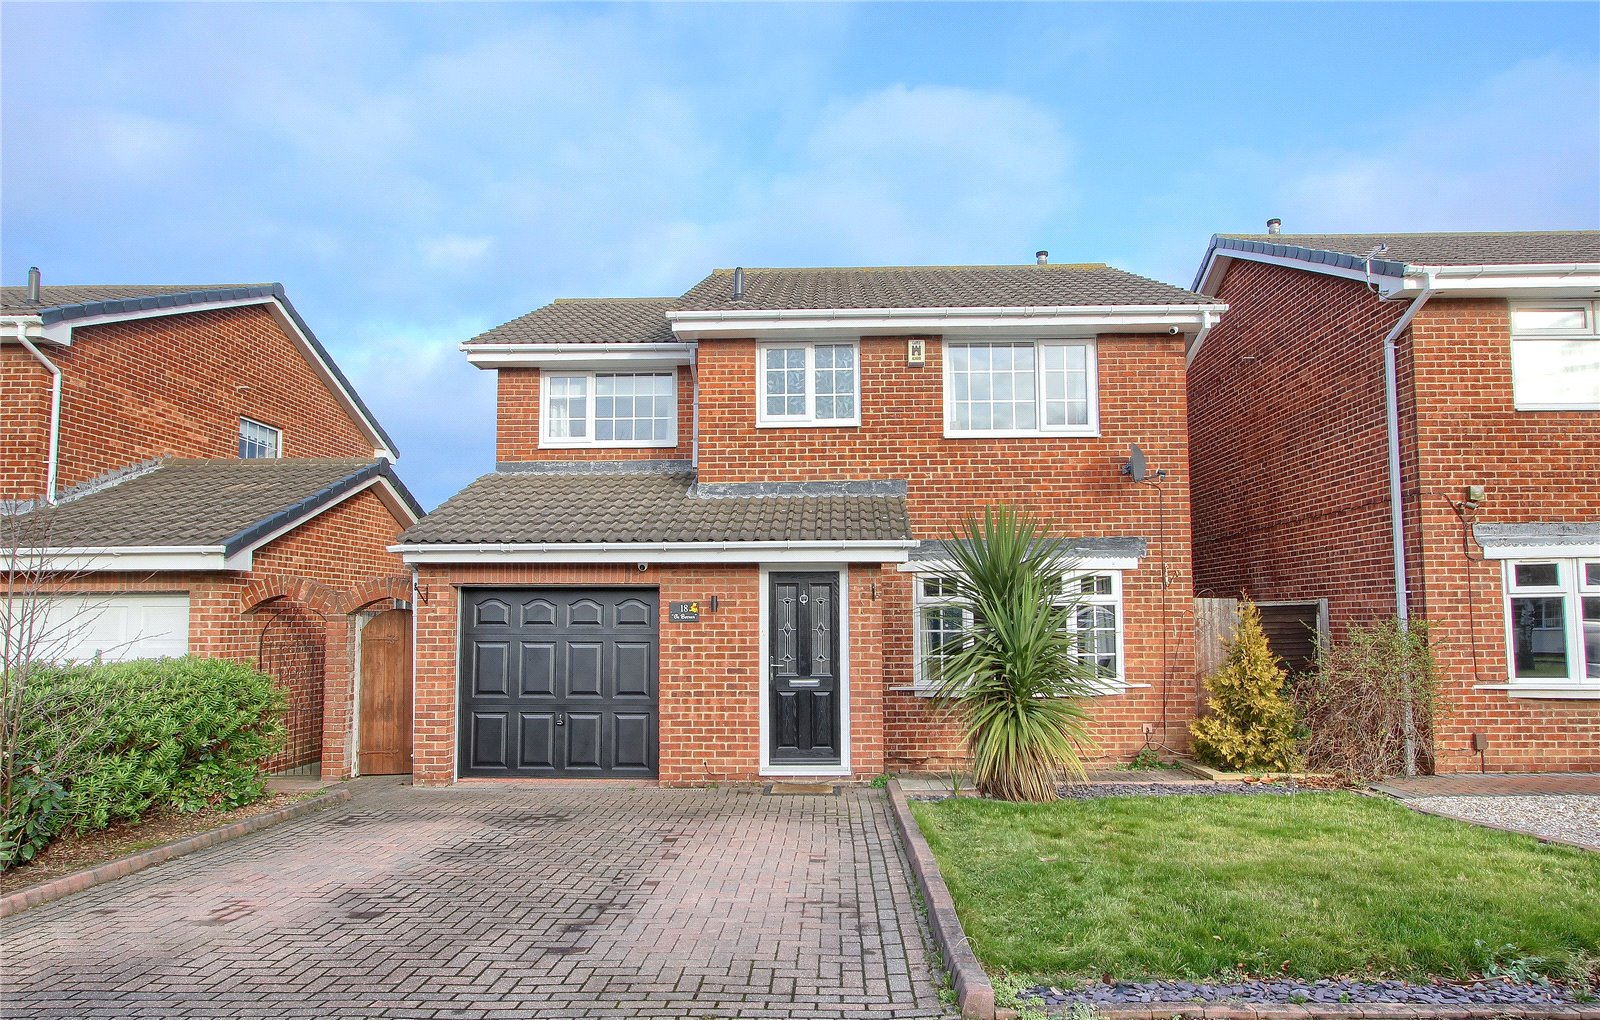 4 bed for sale in High Stone Close, Redcar 1